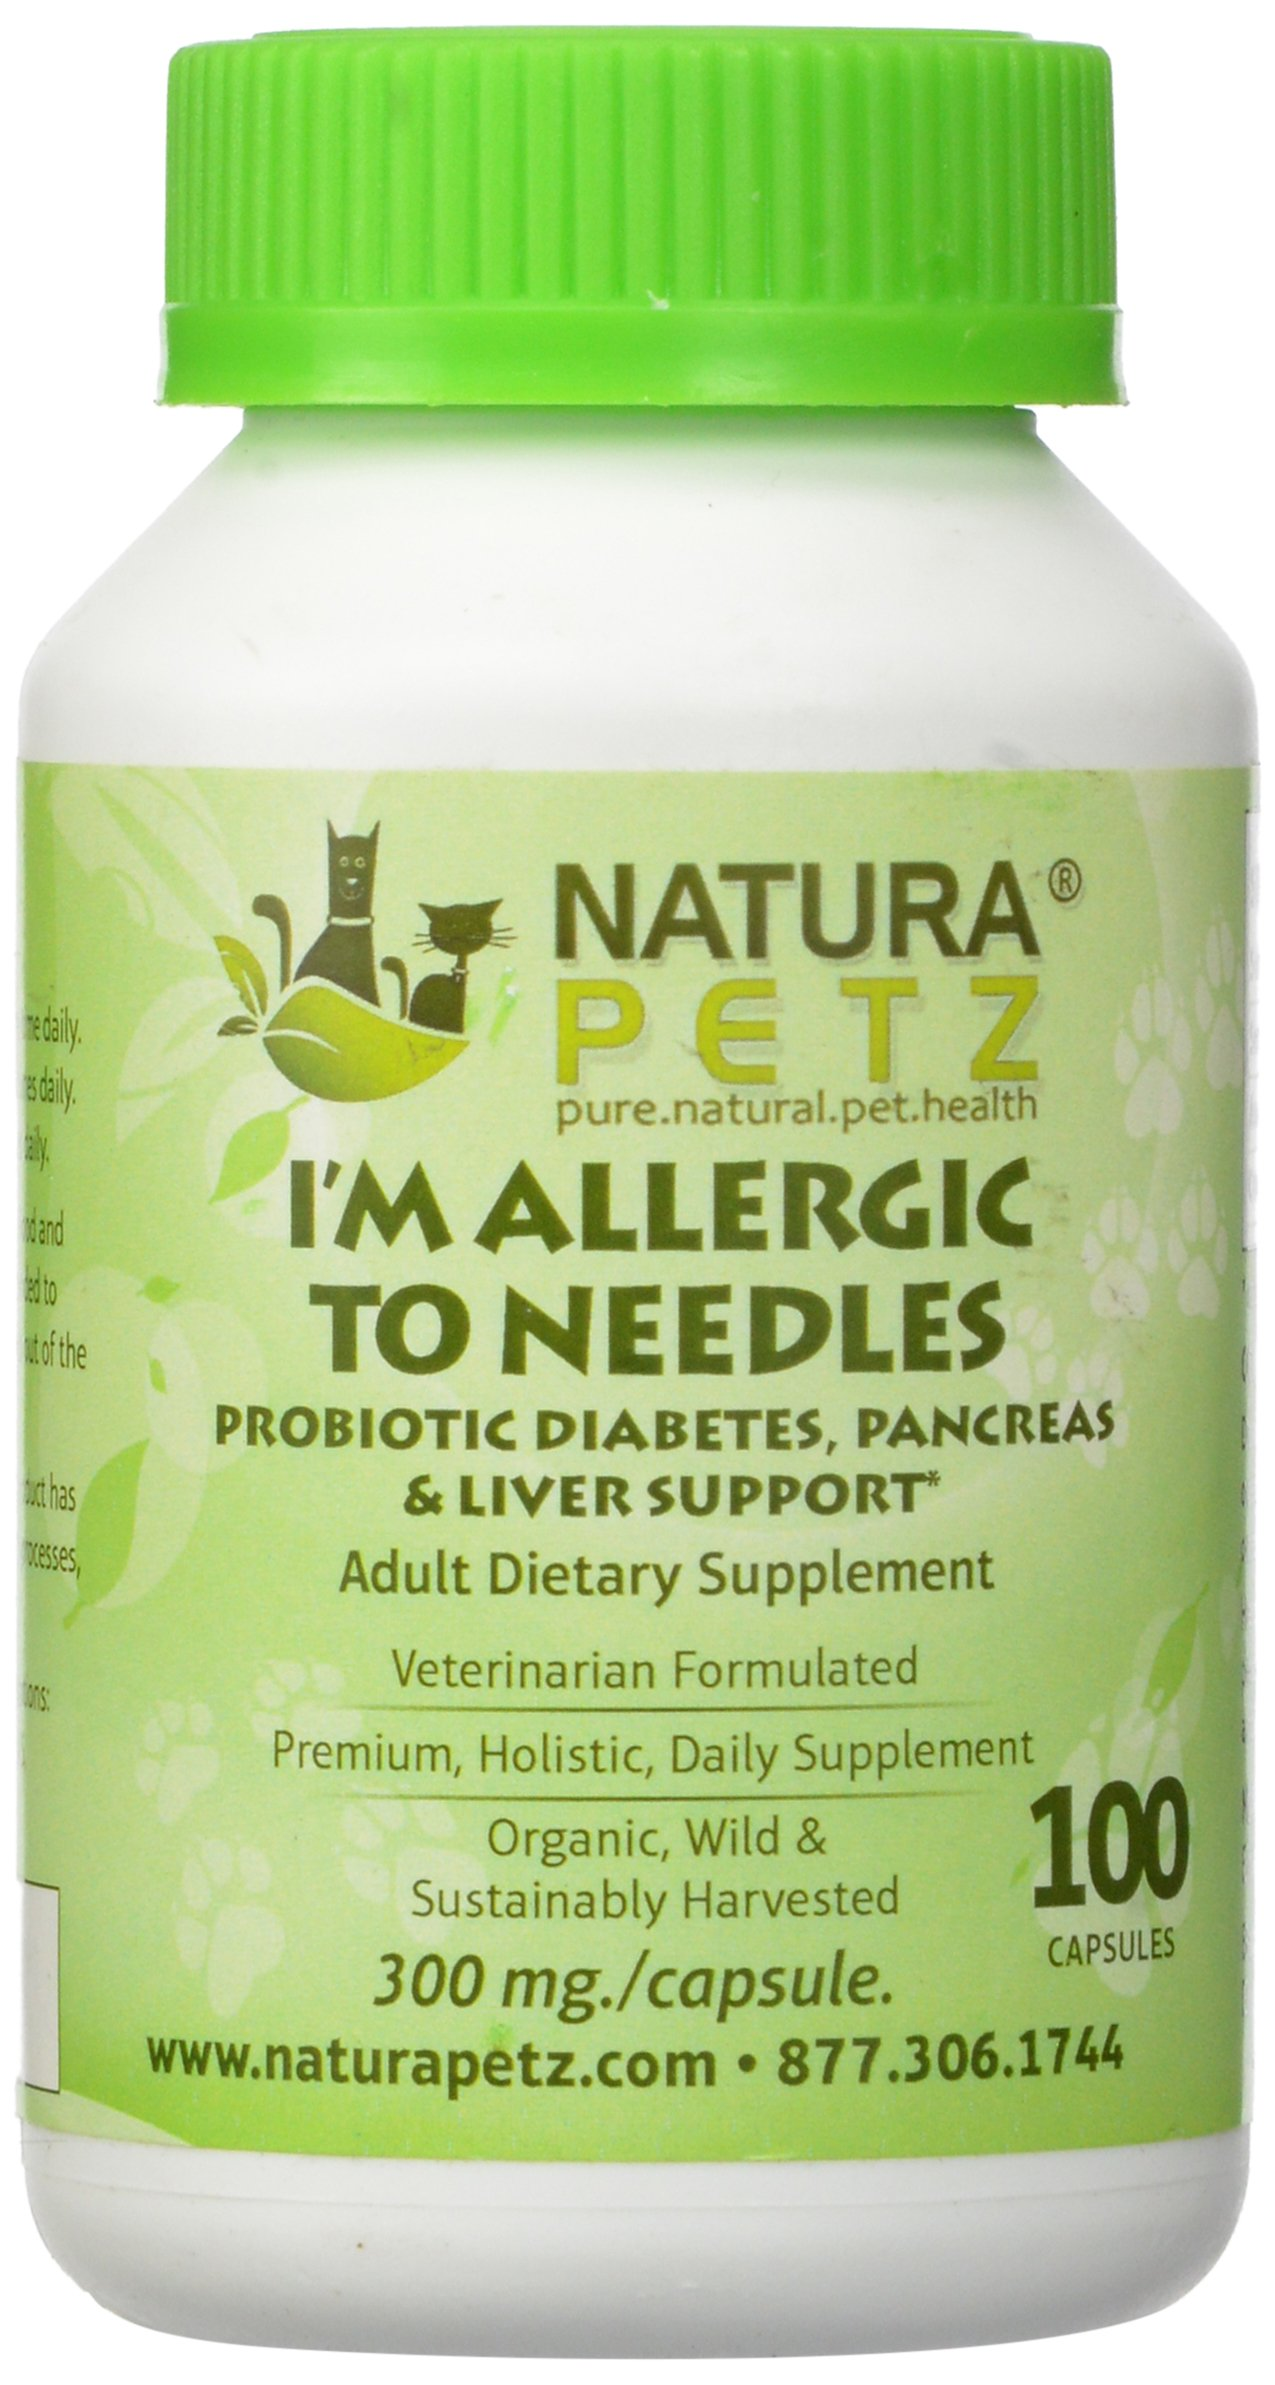 Natura Petz I'm Allergic to Needles Probiotic Diabetes, Pancreas, Liver and Insulin Resistance Support for Adult Pets, 100 Capsules, 300mg Per Capsule by Natura Petz